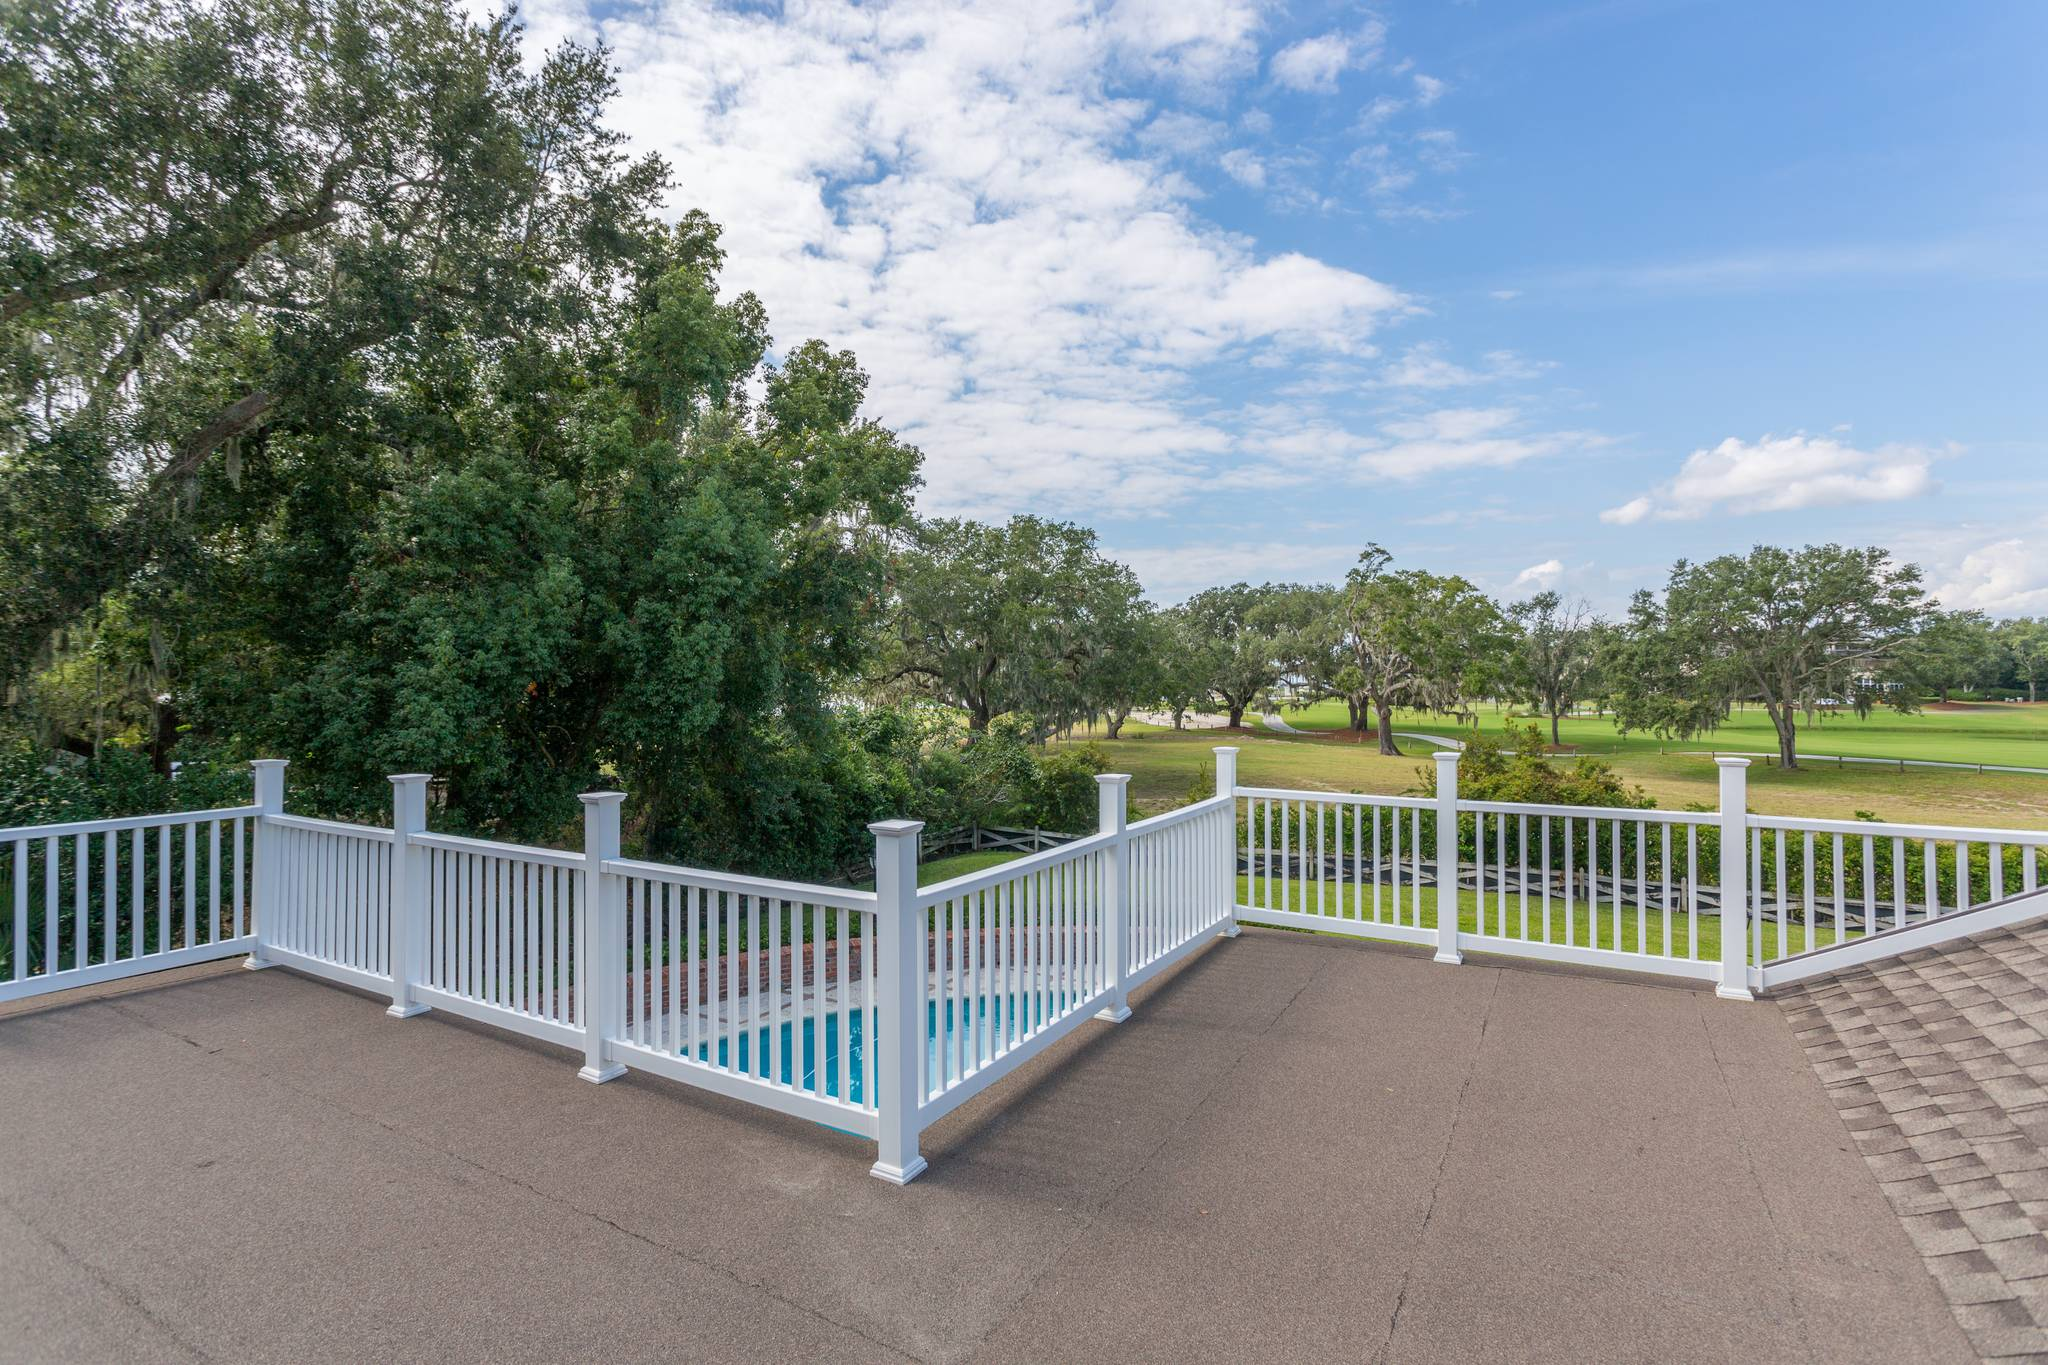 Deck at 154 Gould St on St Simons Island